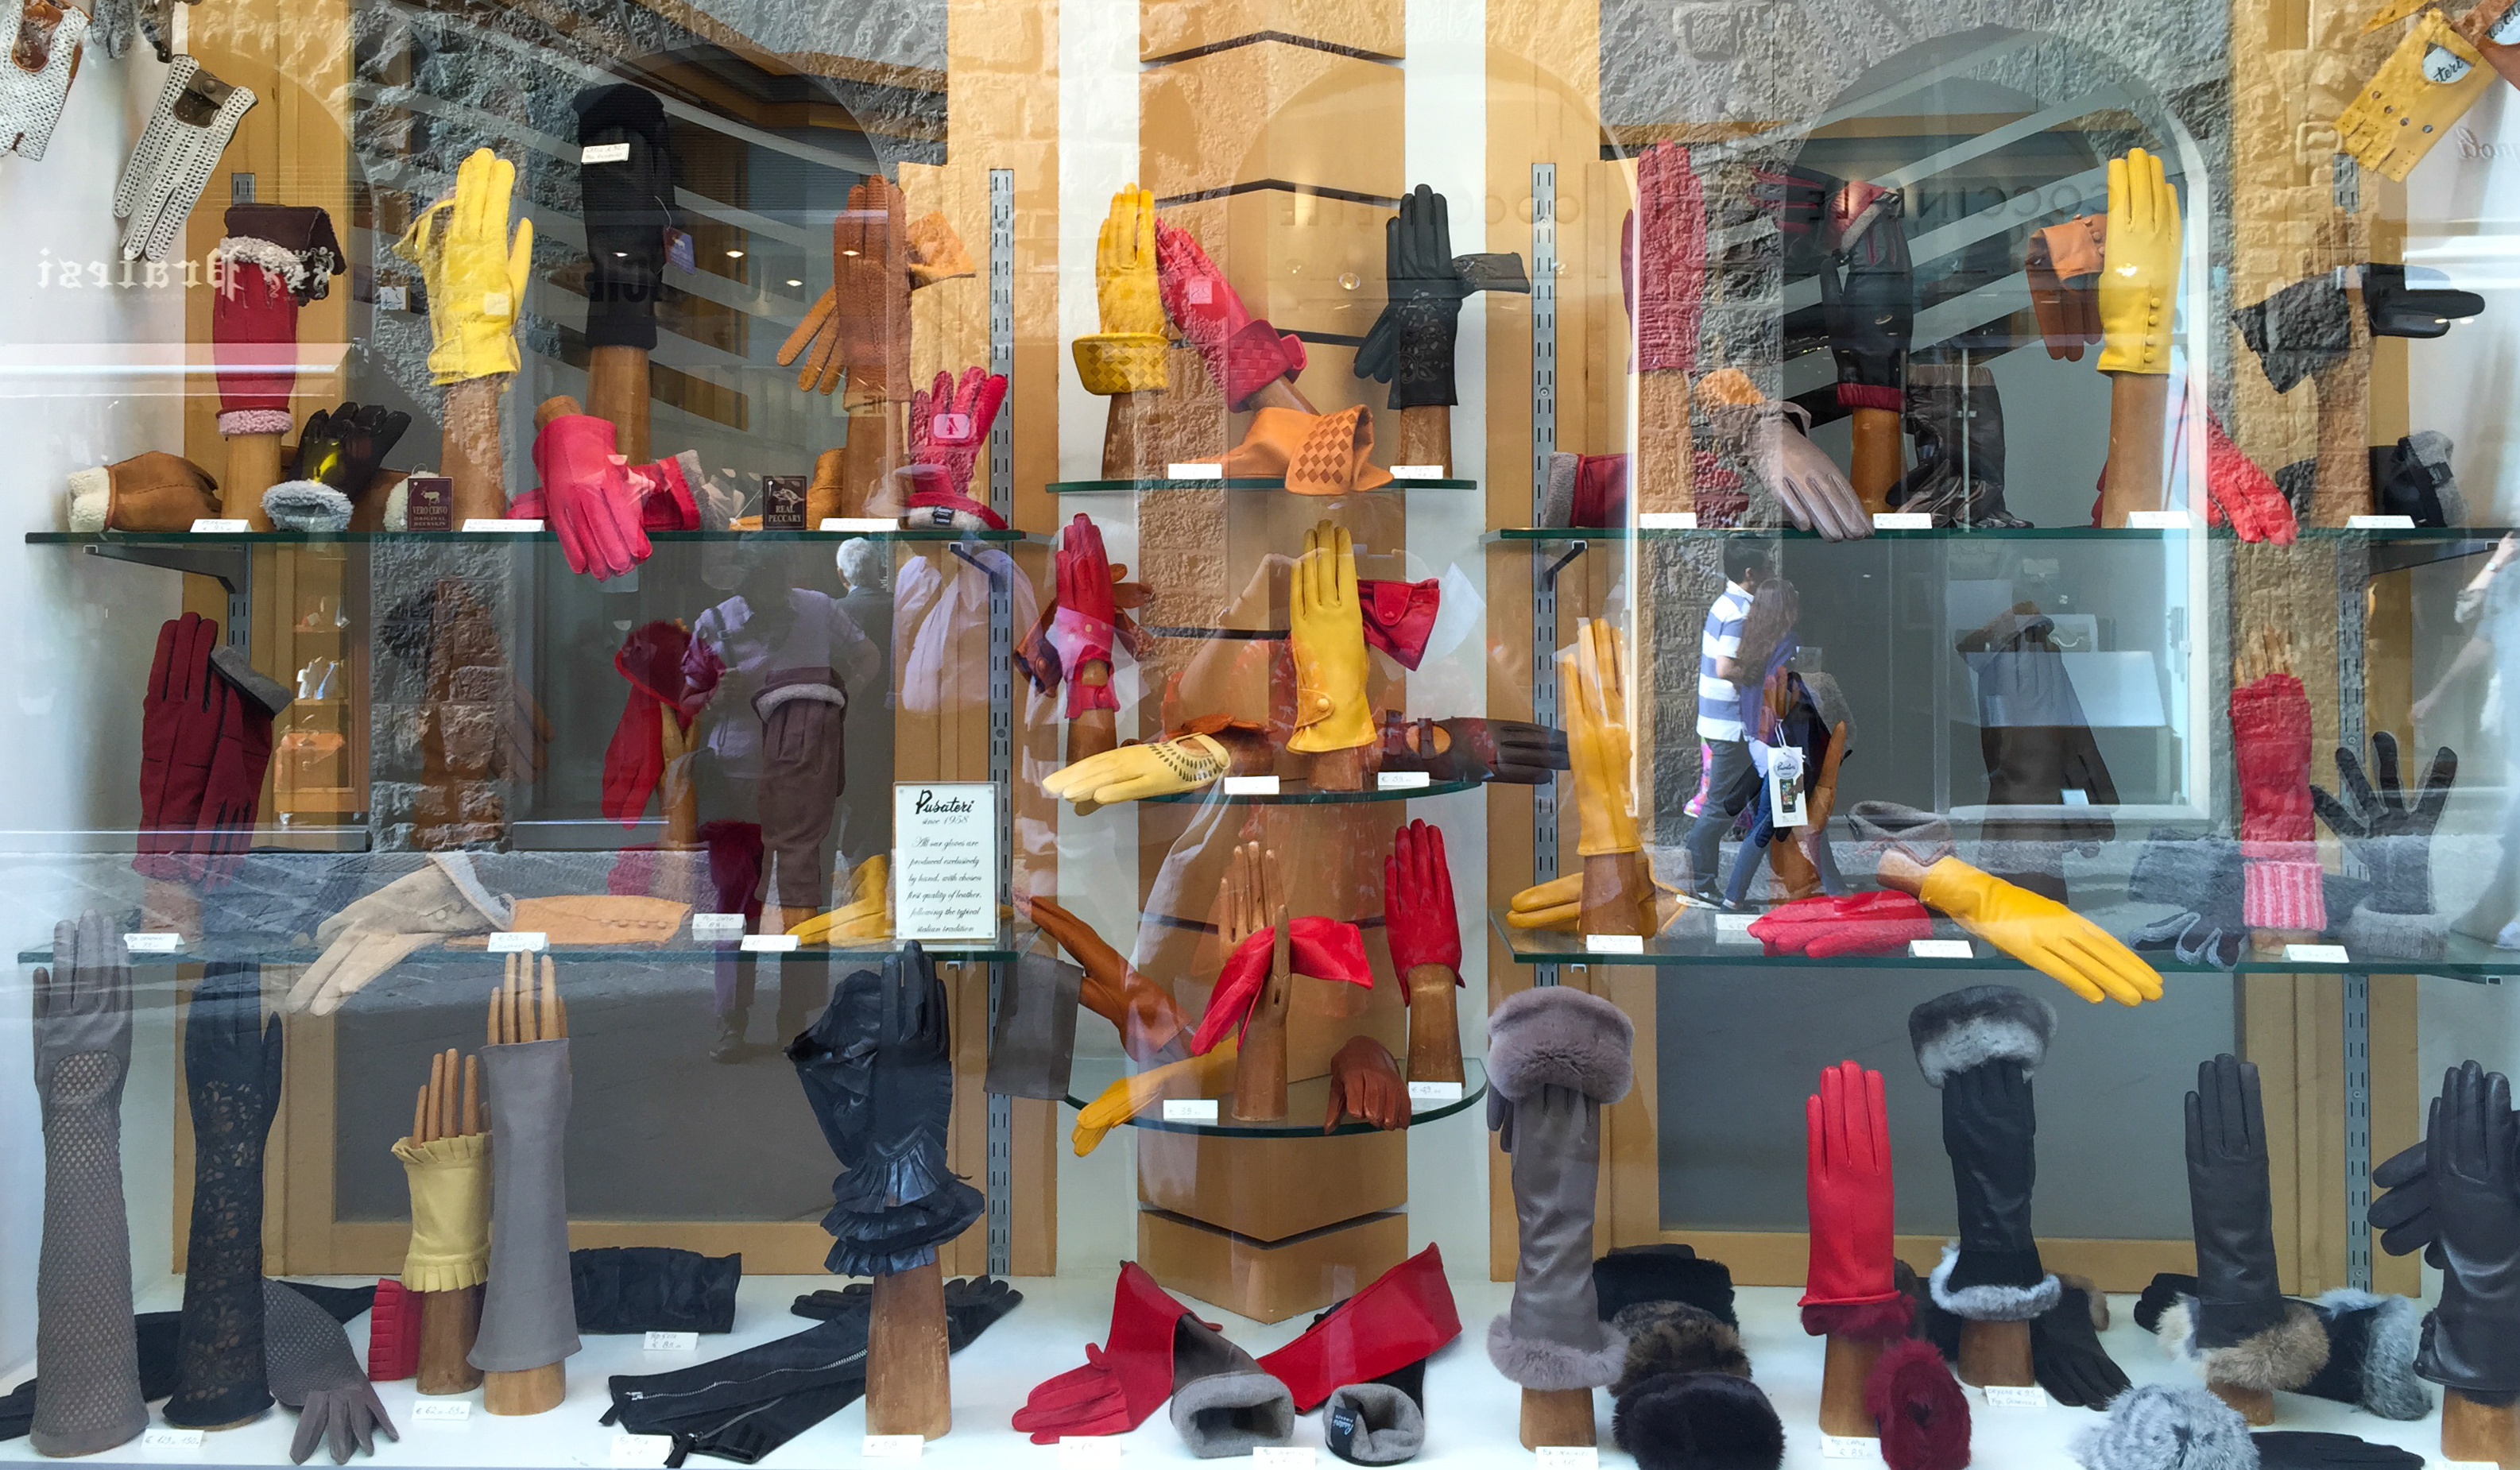 glove display